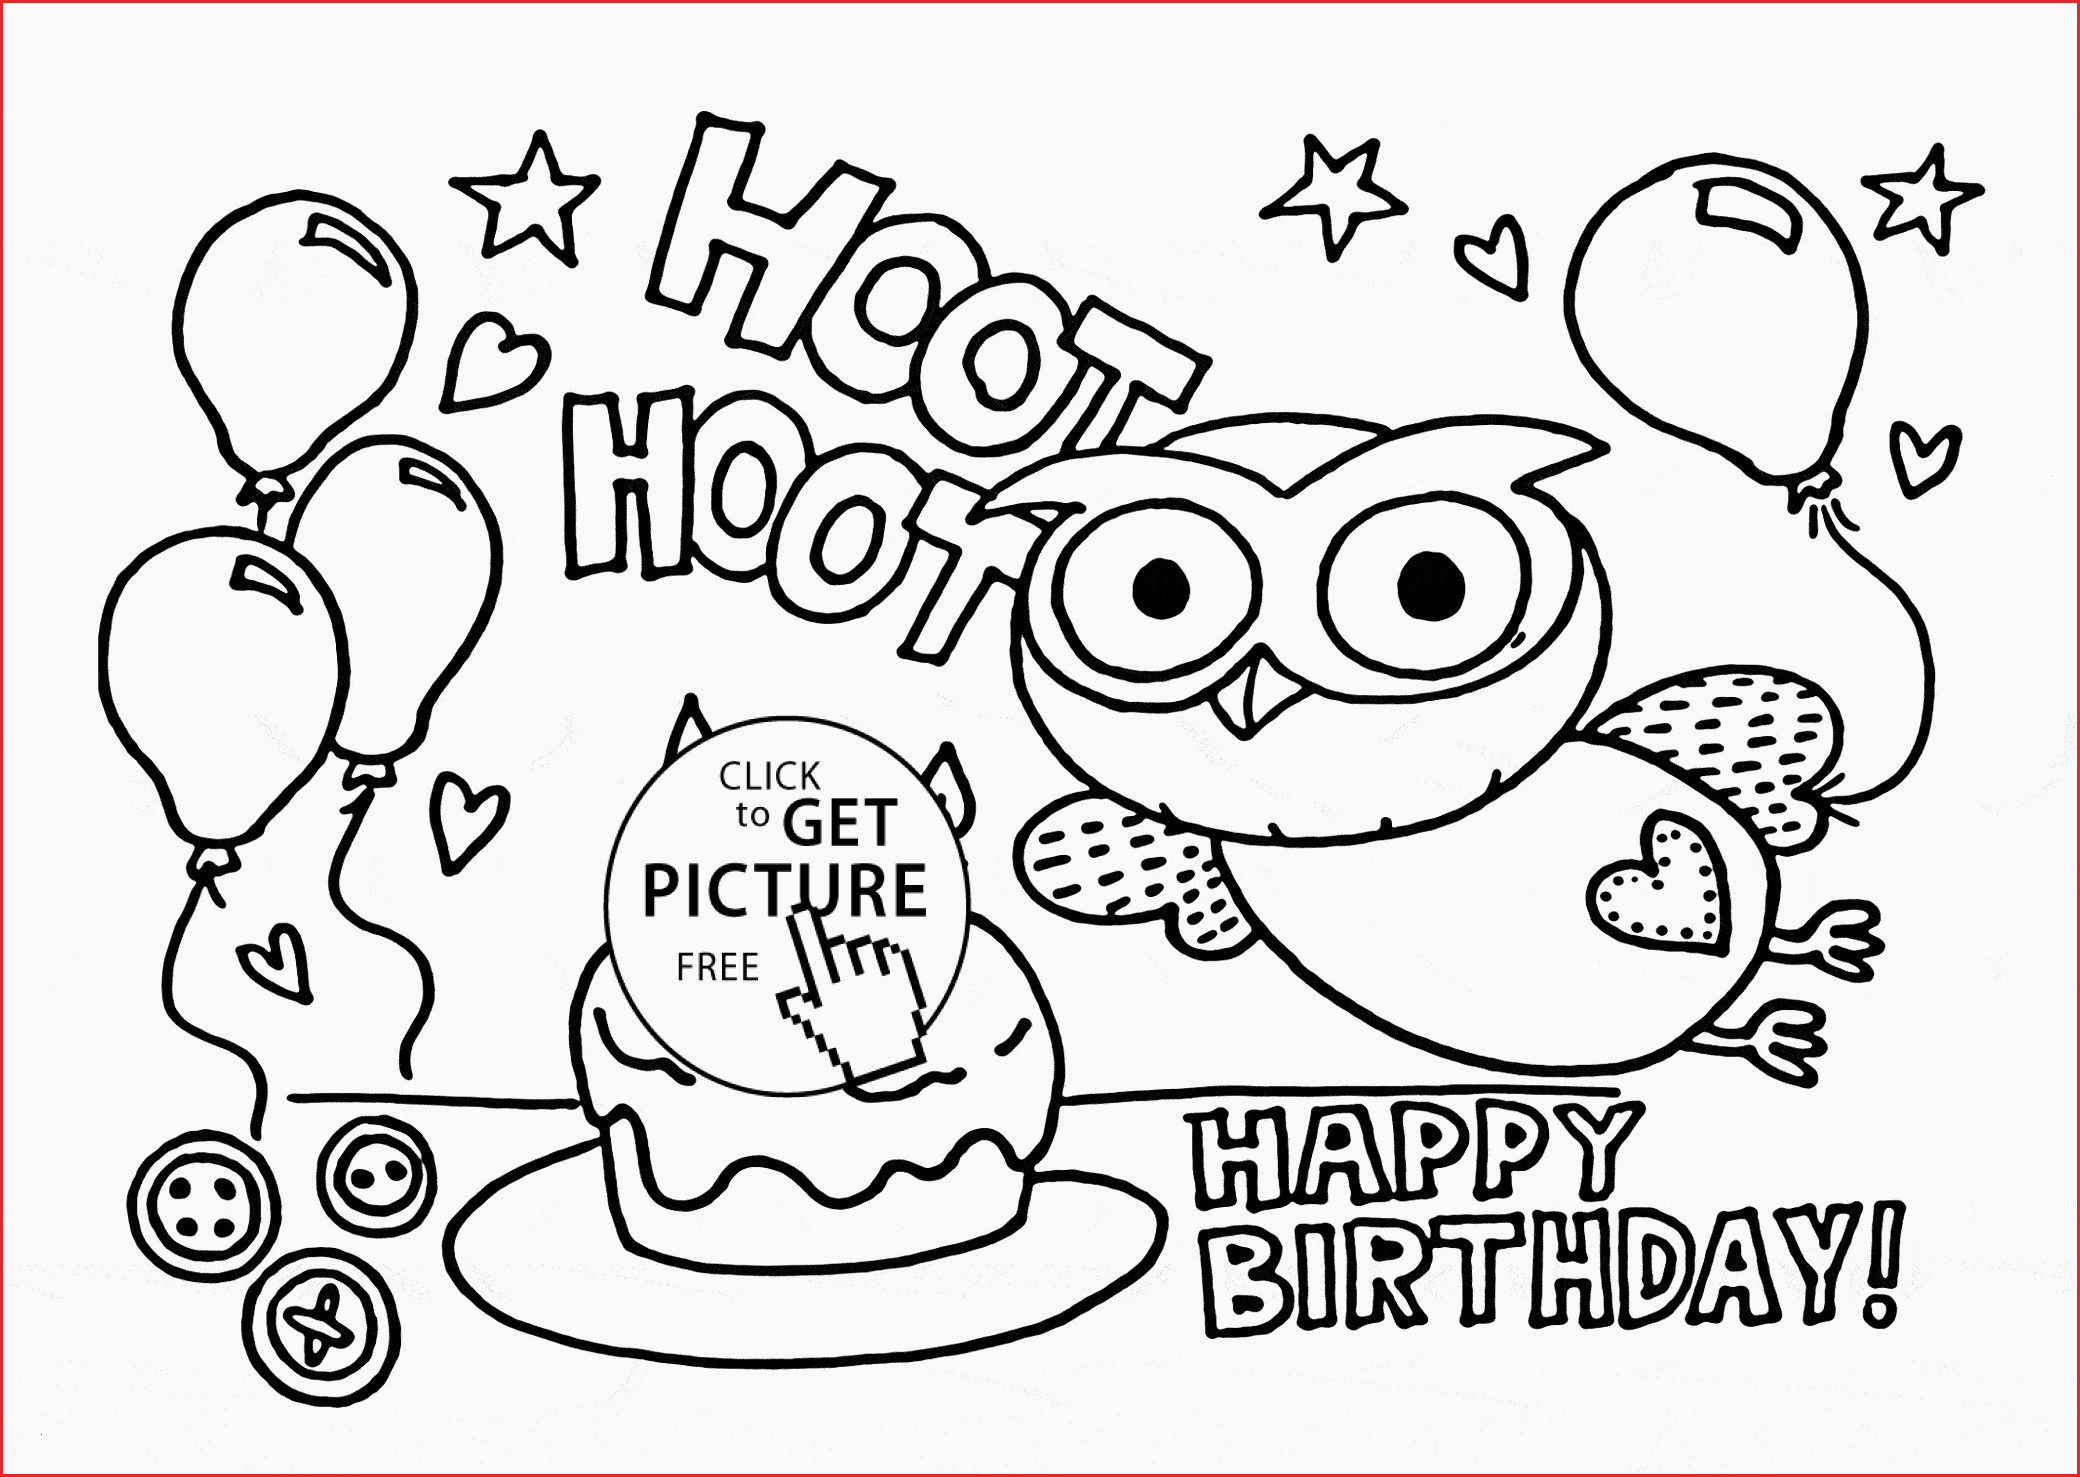 Coloring Pages For Birthday Happy Birthday Drawing 196921 Lovely Birthday Card Coloring Page